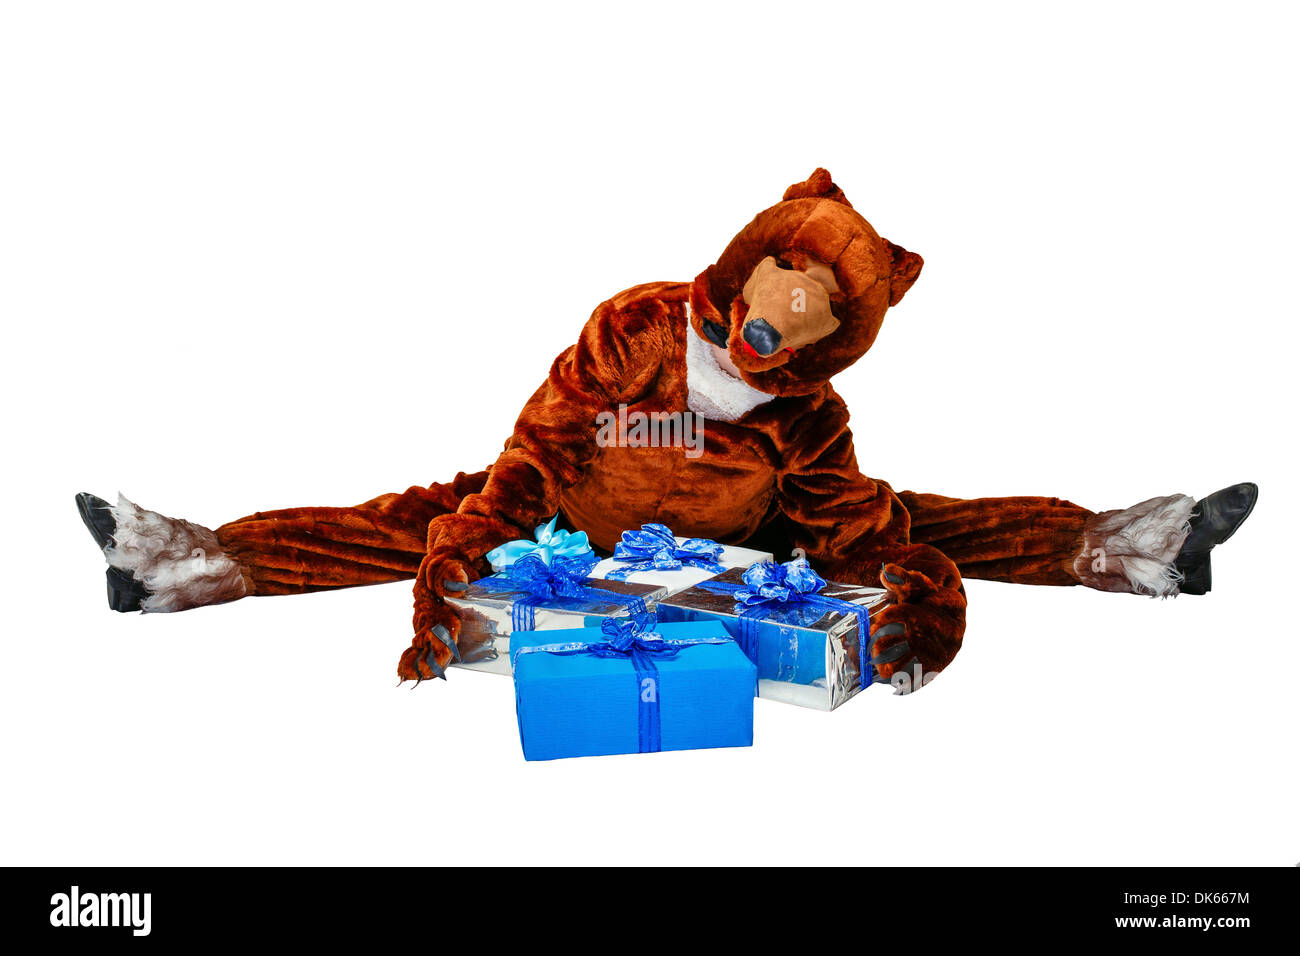 Girl in a bear costume holding Christmas gifts isolated on white background - Stock Image